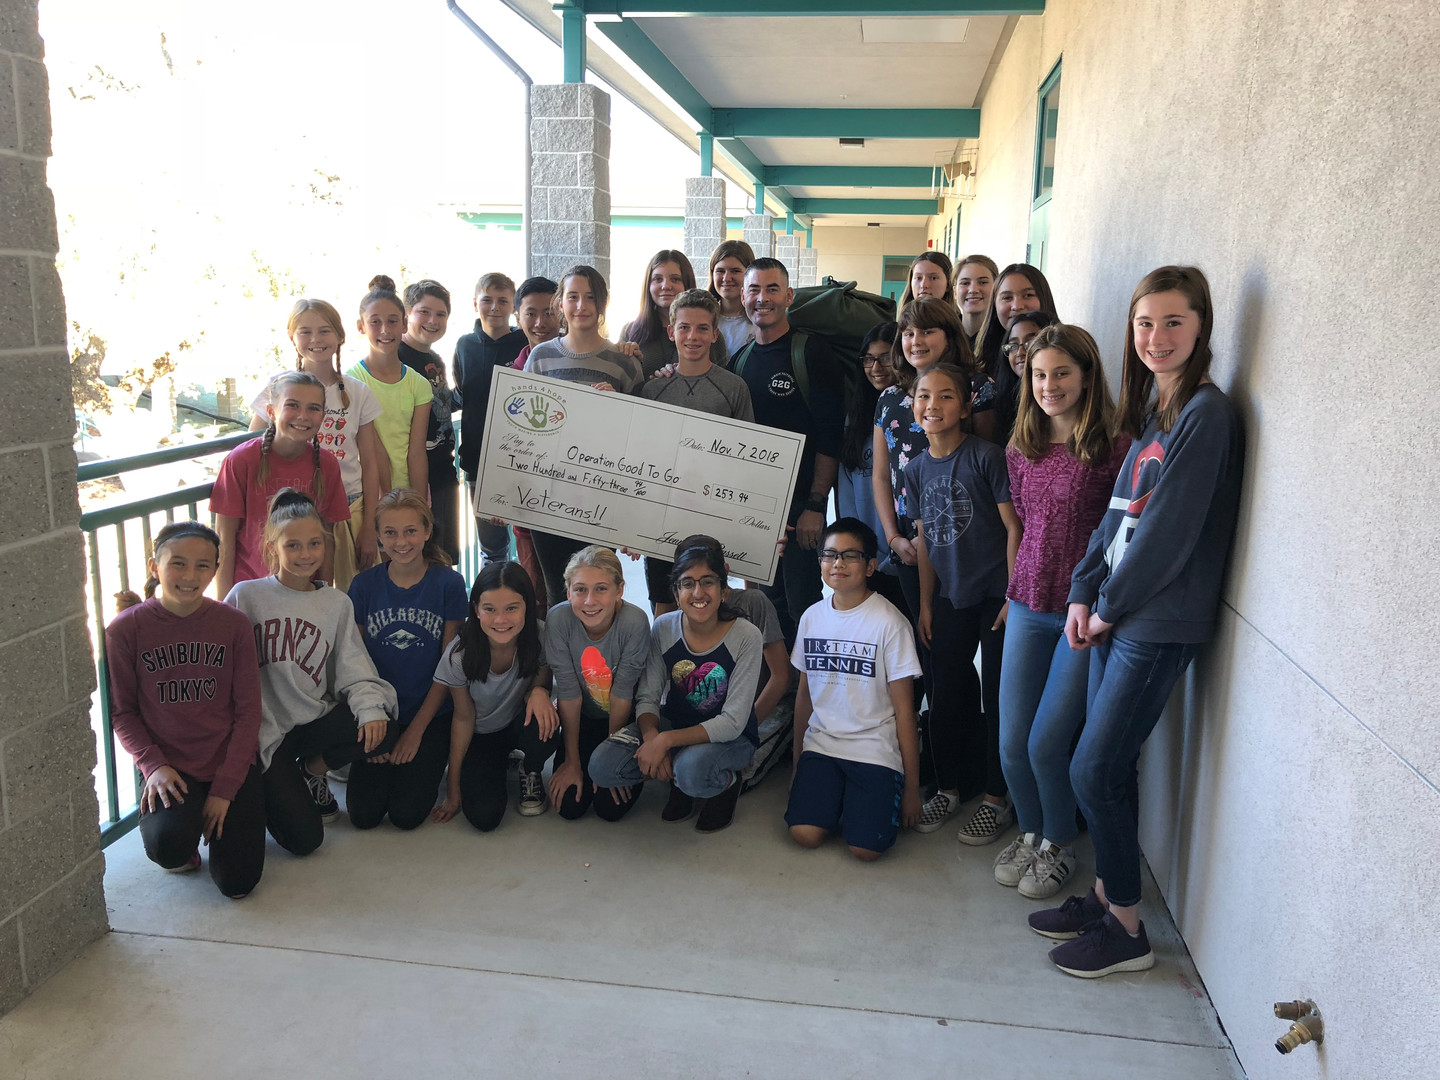 Marina Village Middle School | Providing Check to Homeless Veterans